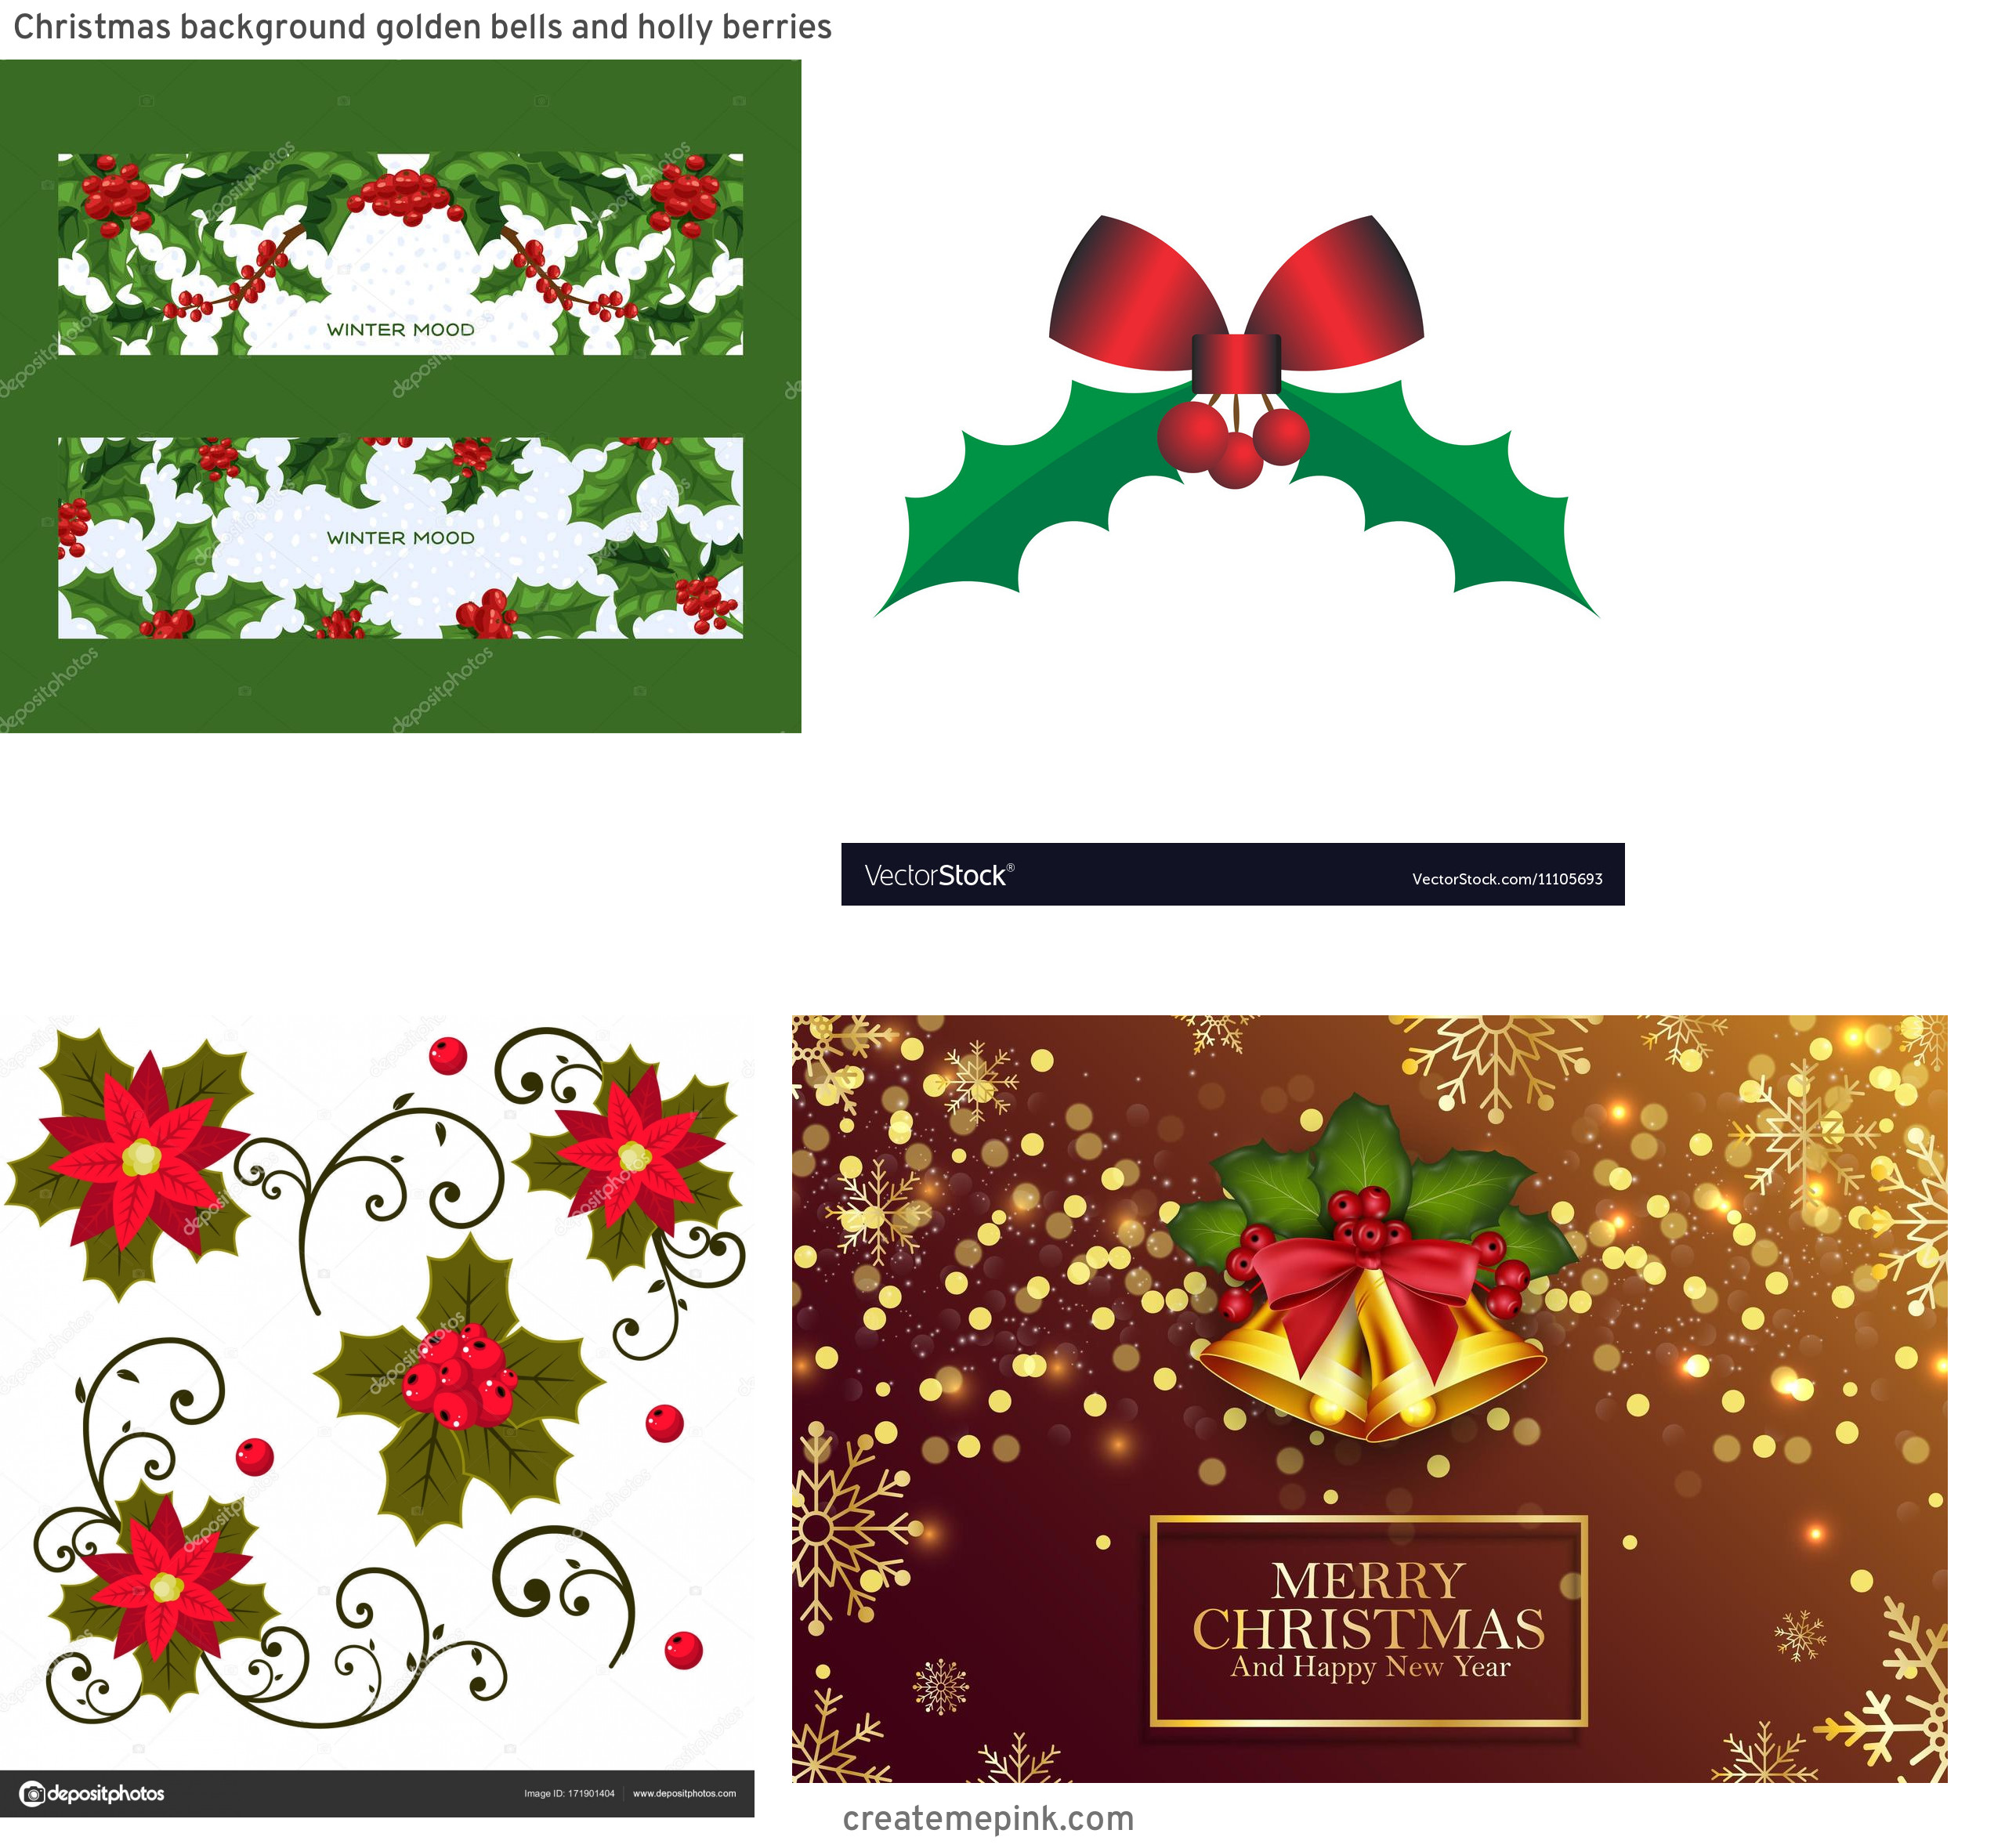 Holly Berry Vector Background: Christmas Background Golden Bells And Holly Berries